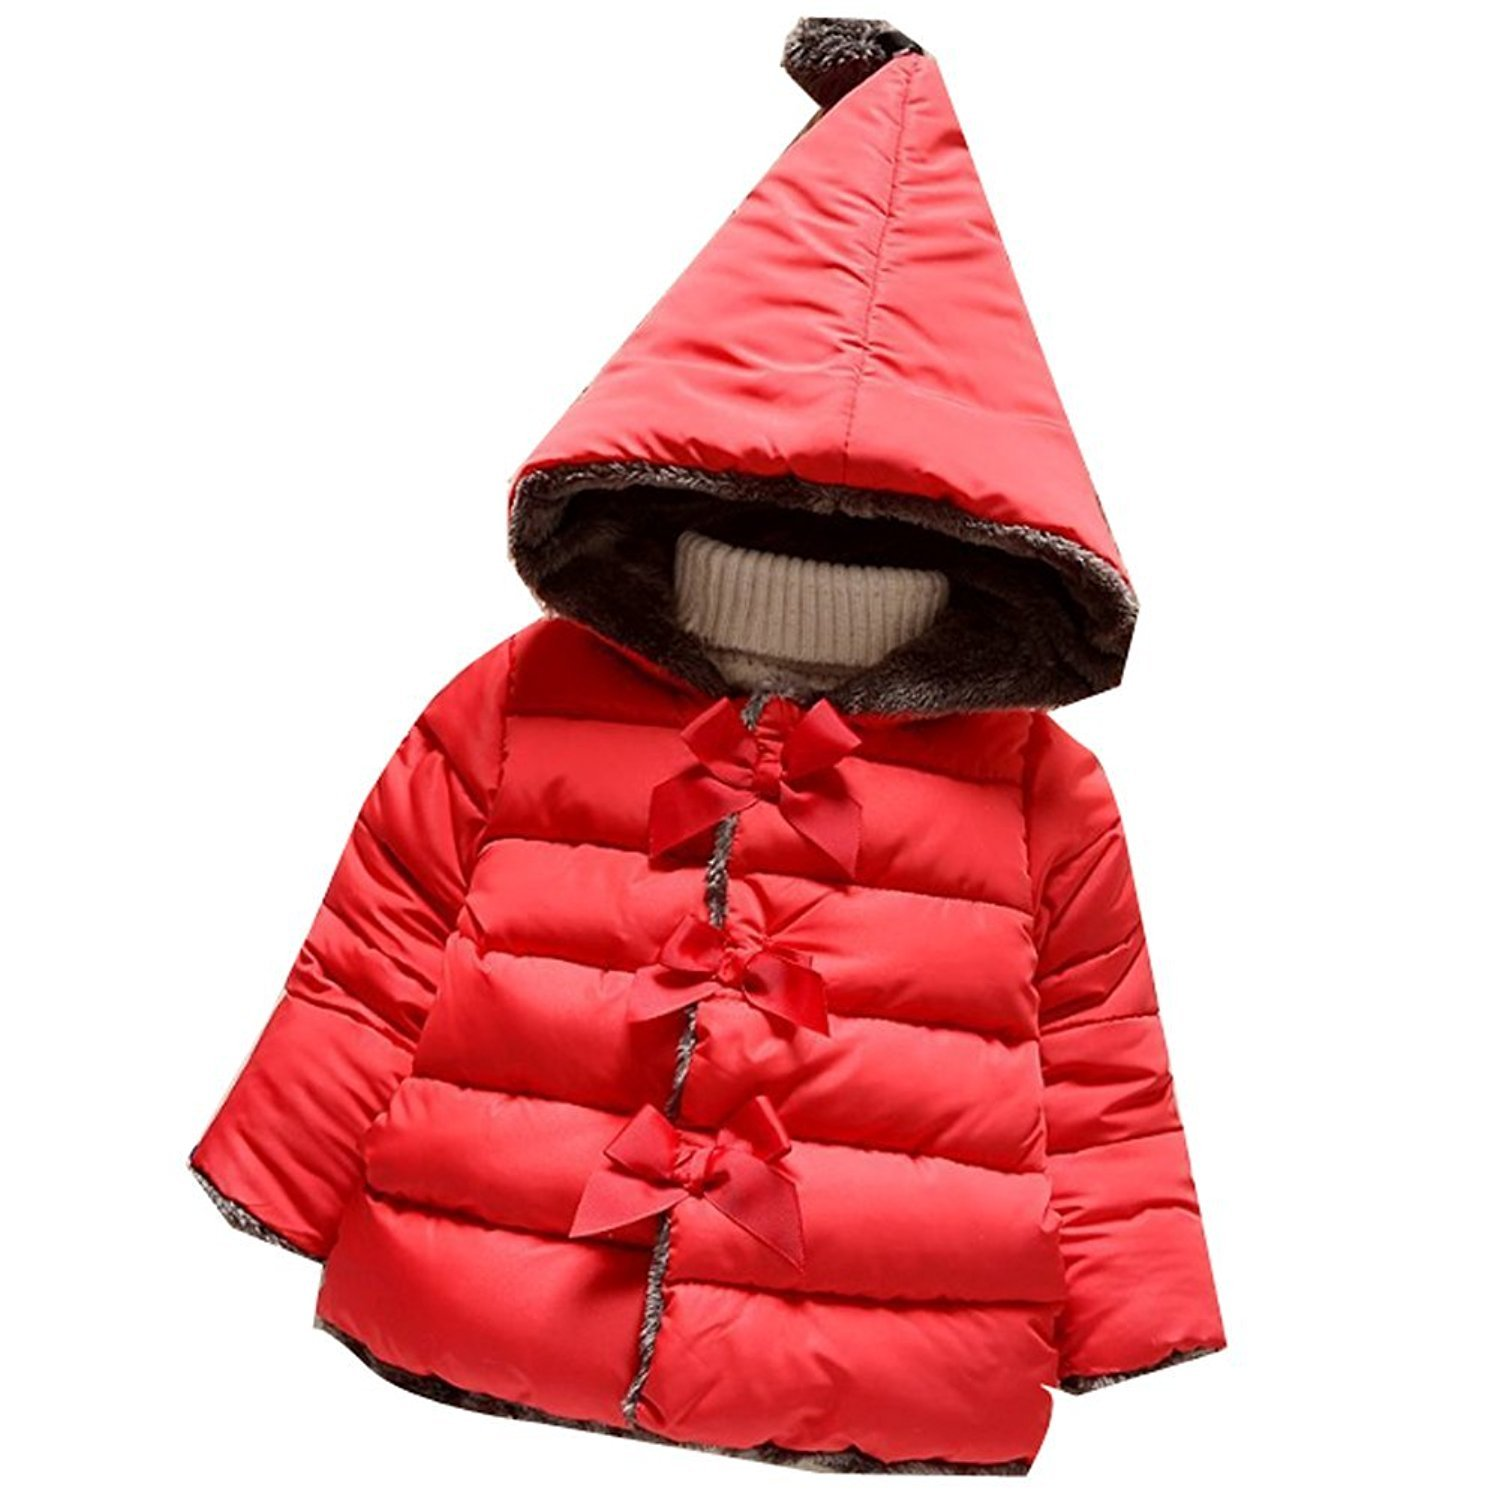 Baby Girls Warm Fleece Hooded Coat Puffer Jacket Outerwear